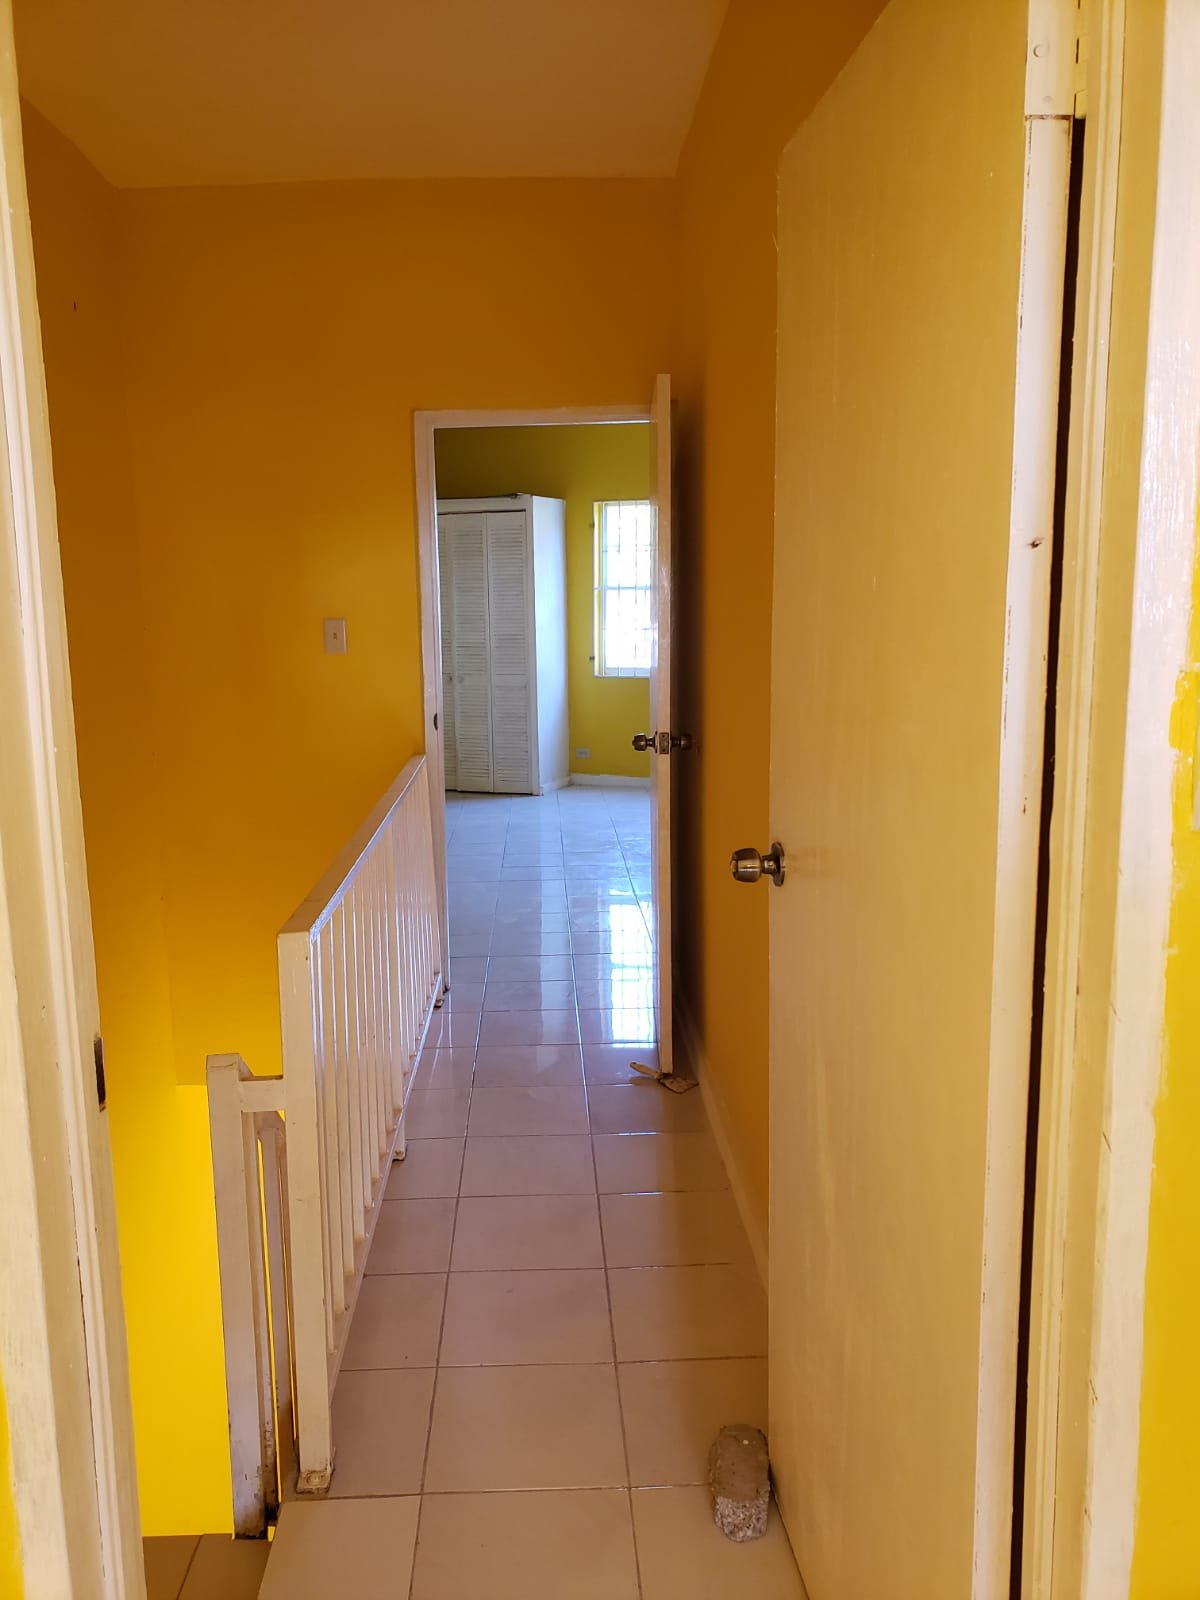 2 Bedroom Townhomes: 2 BEDROOM 2 BATH TOWNHOUSE For Rent In IRONSHORE St James